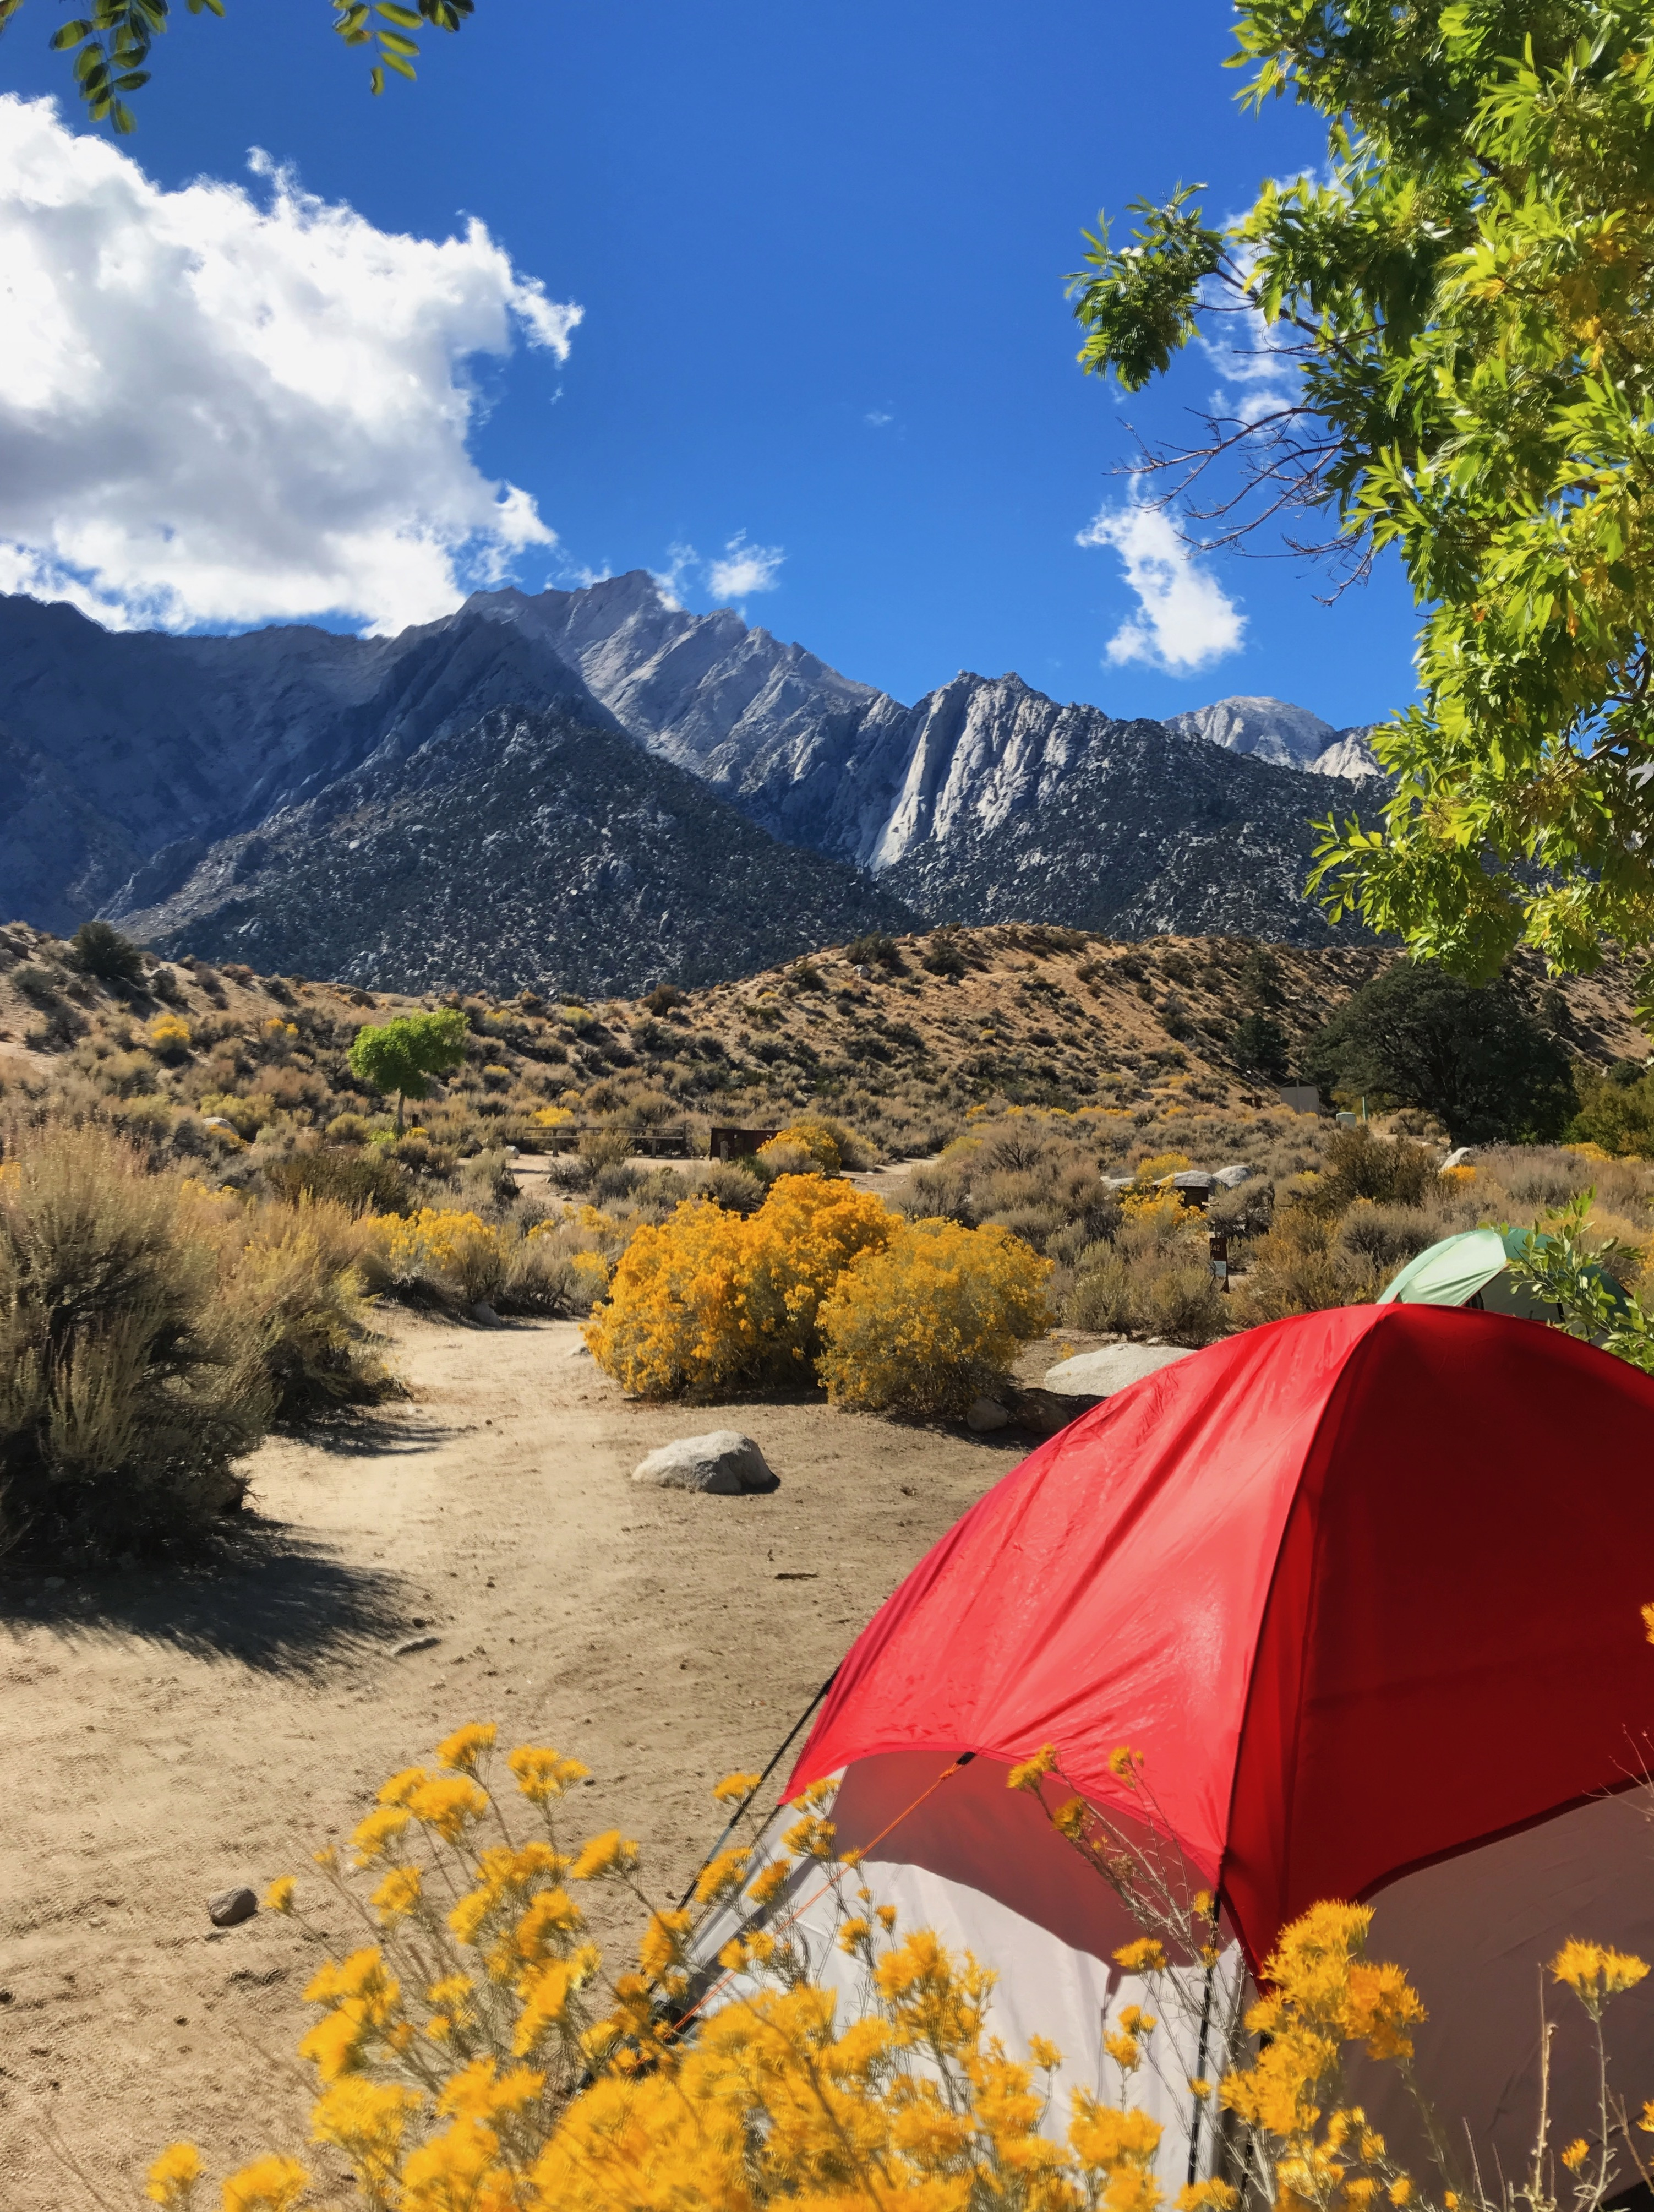 Camping in Lone Pine